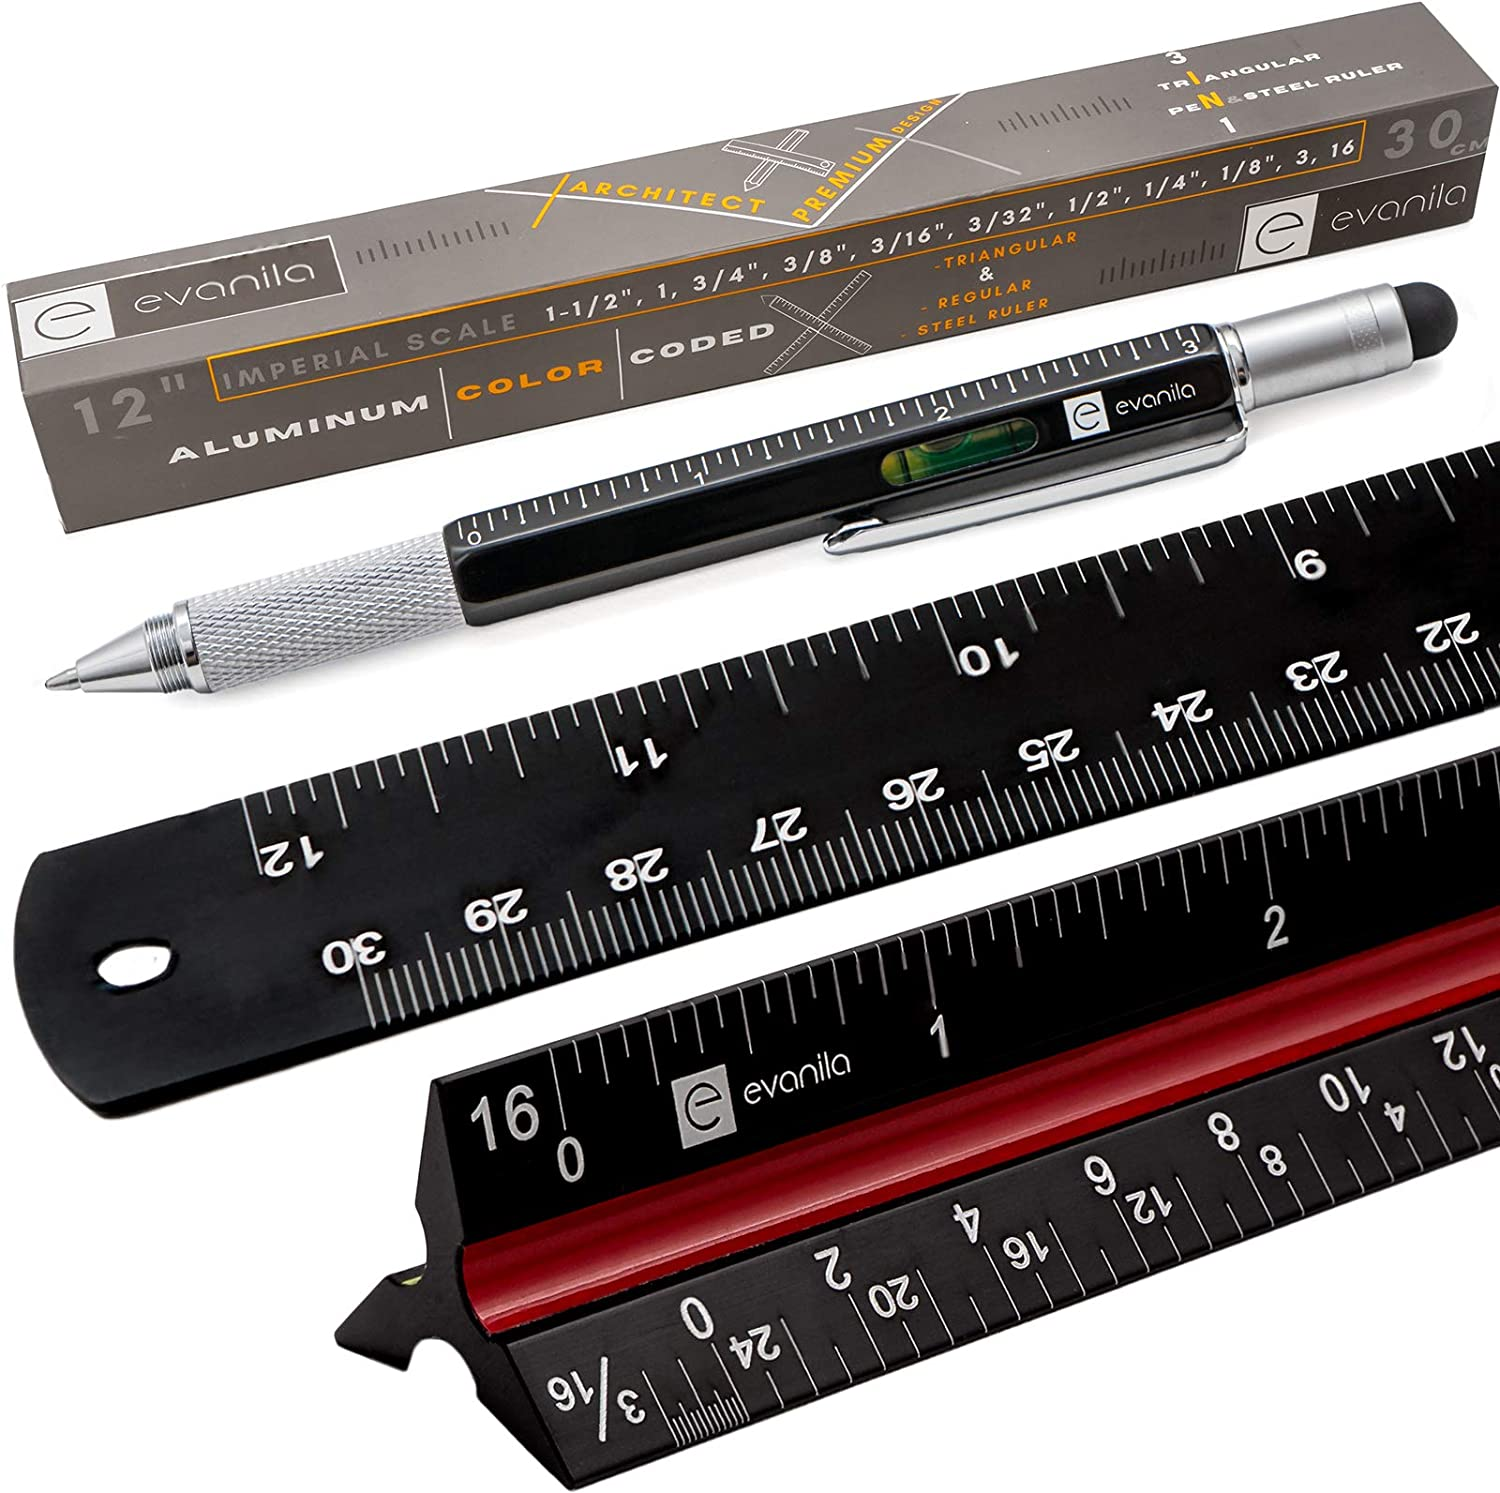 Scale Ruler Triangular Architectural Metal - Aluminum Architect Scale Ruler Multifunctional Pen with Cross-head Screwdriver Slotted Screwdriver Spirit Level Touch Screen Stylus for Drafting Blueprints